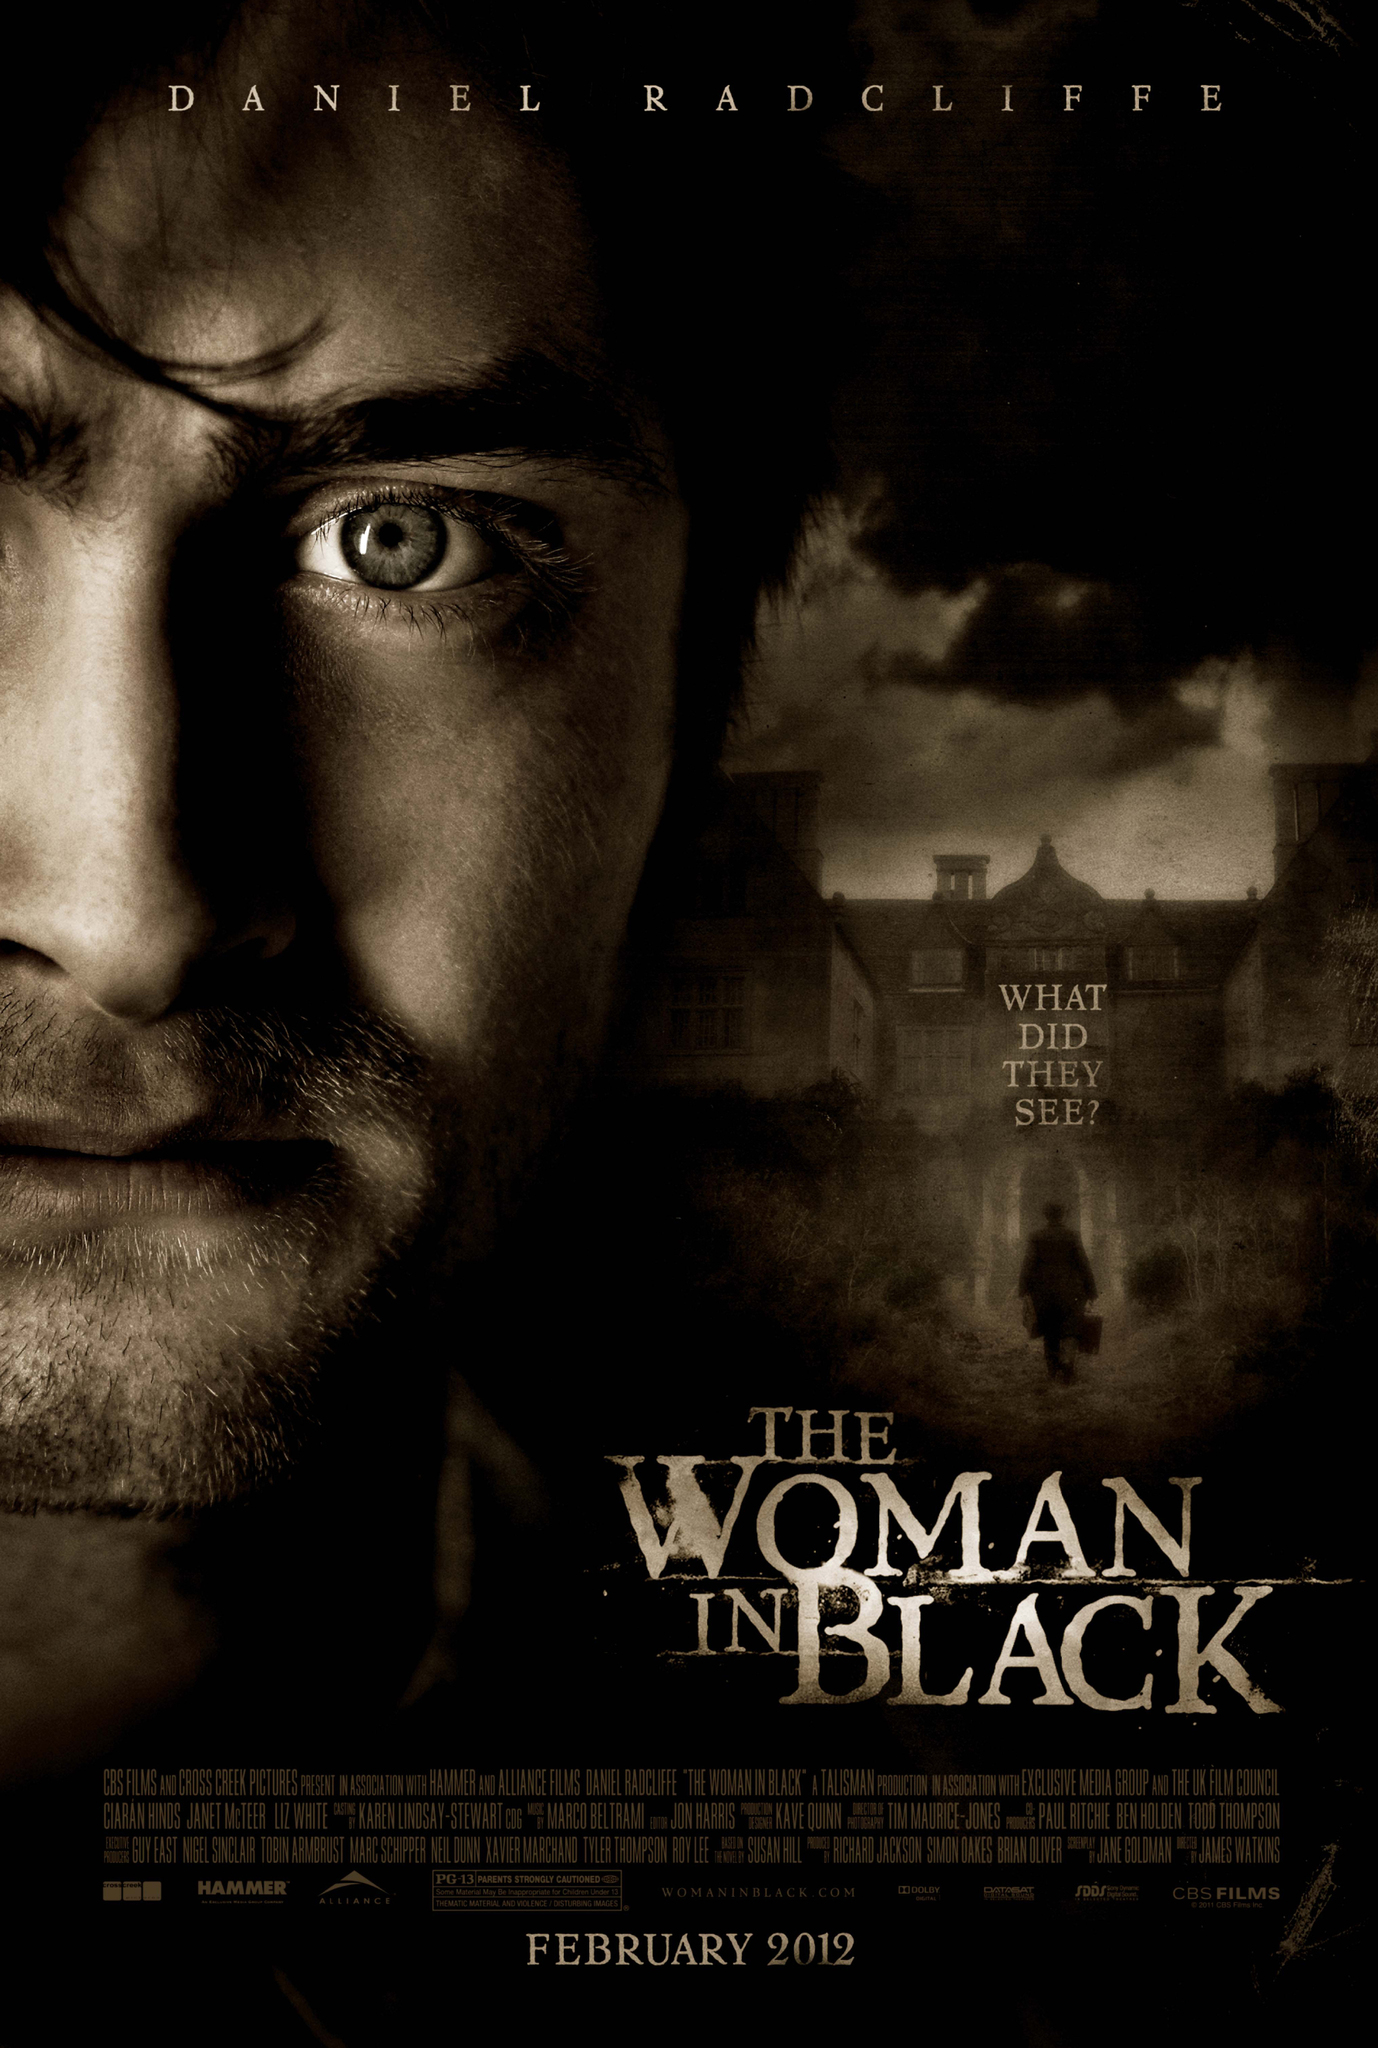 The Woman in Black (2012) - Directed by: James WatkinsStarring:Daniel Radcliffe, Janet McTeer, Ciaran HindsRated: PG-13 for Thematic Material and Violence/Disturbing ImagesRunning Time: 1 h 35 mTMM Score: 3.5 stars out of 5STRENGTHS: Story, Production Design, Pacing, Atmosphere, EndingWEAKNESSES: Some Acting, Lack of Real Scares, Too Many Jump Scares